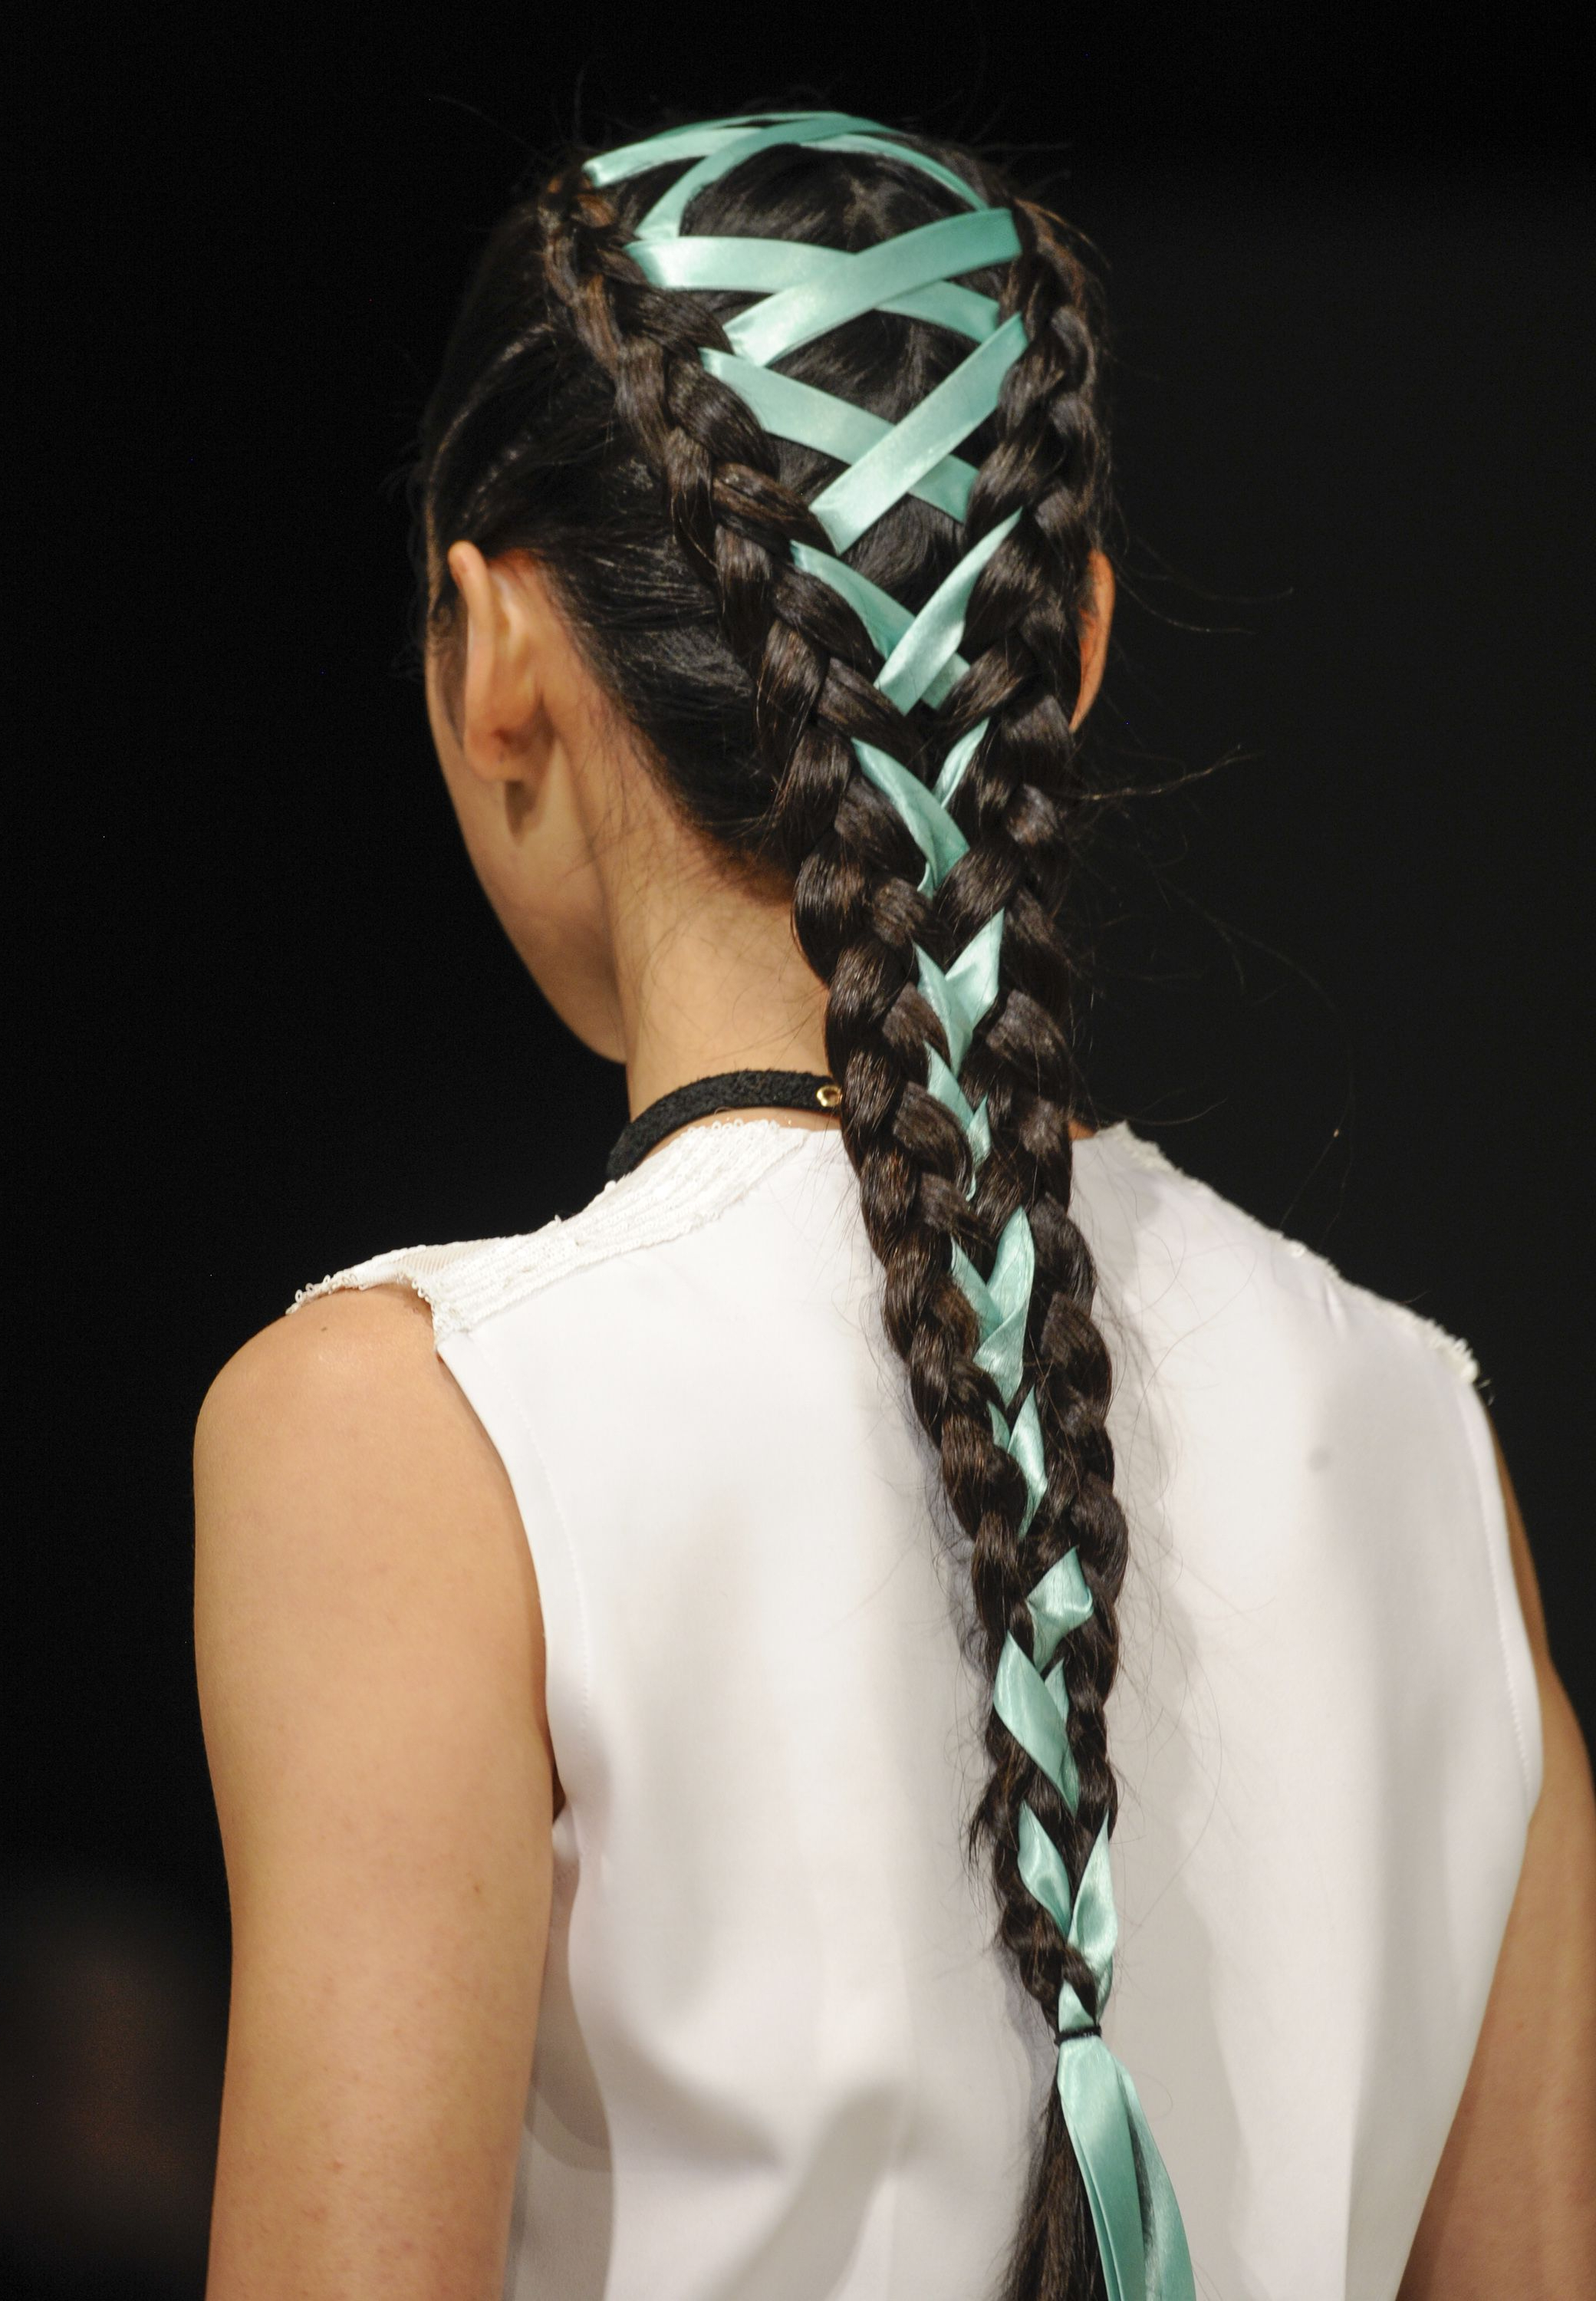 Well Known Corset Braided Hairstyles Pertaining To Corset Braids: The New Way To Tie Up Your Hair (View 16 of 20)